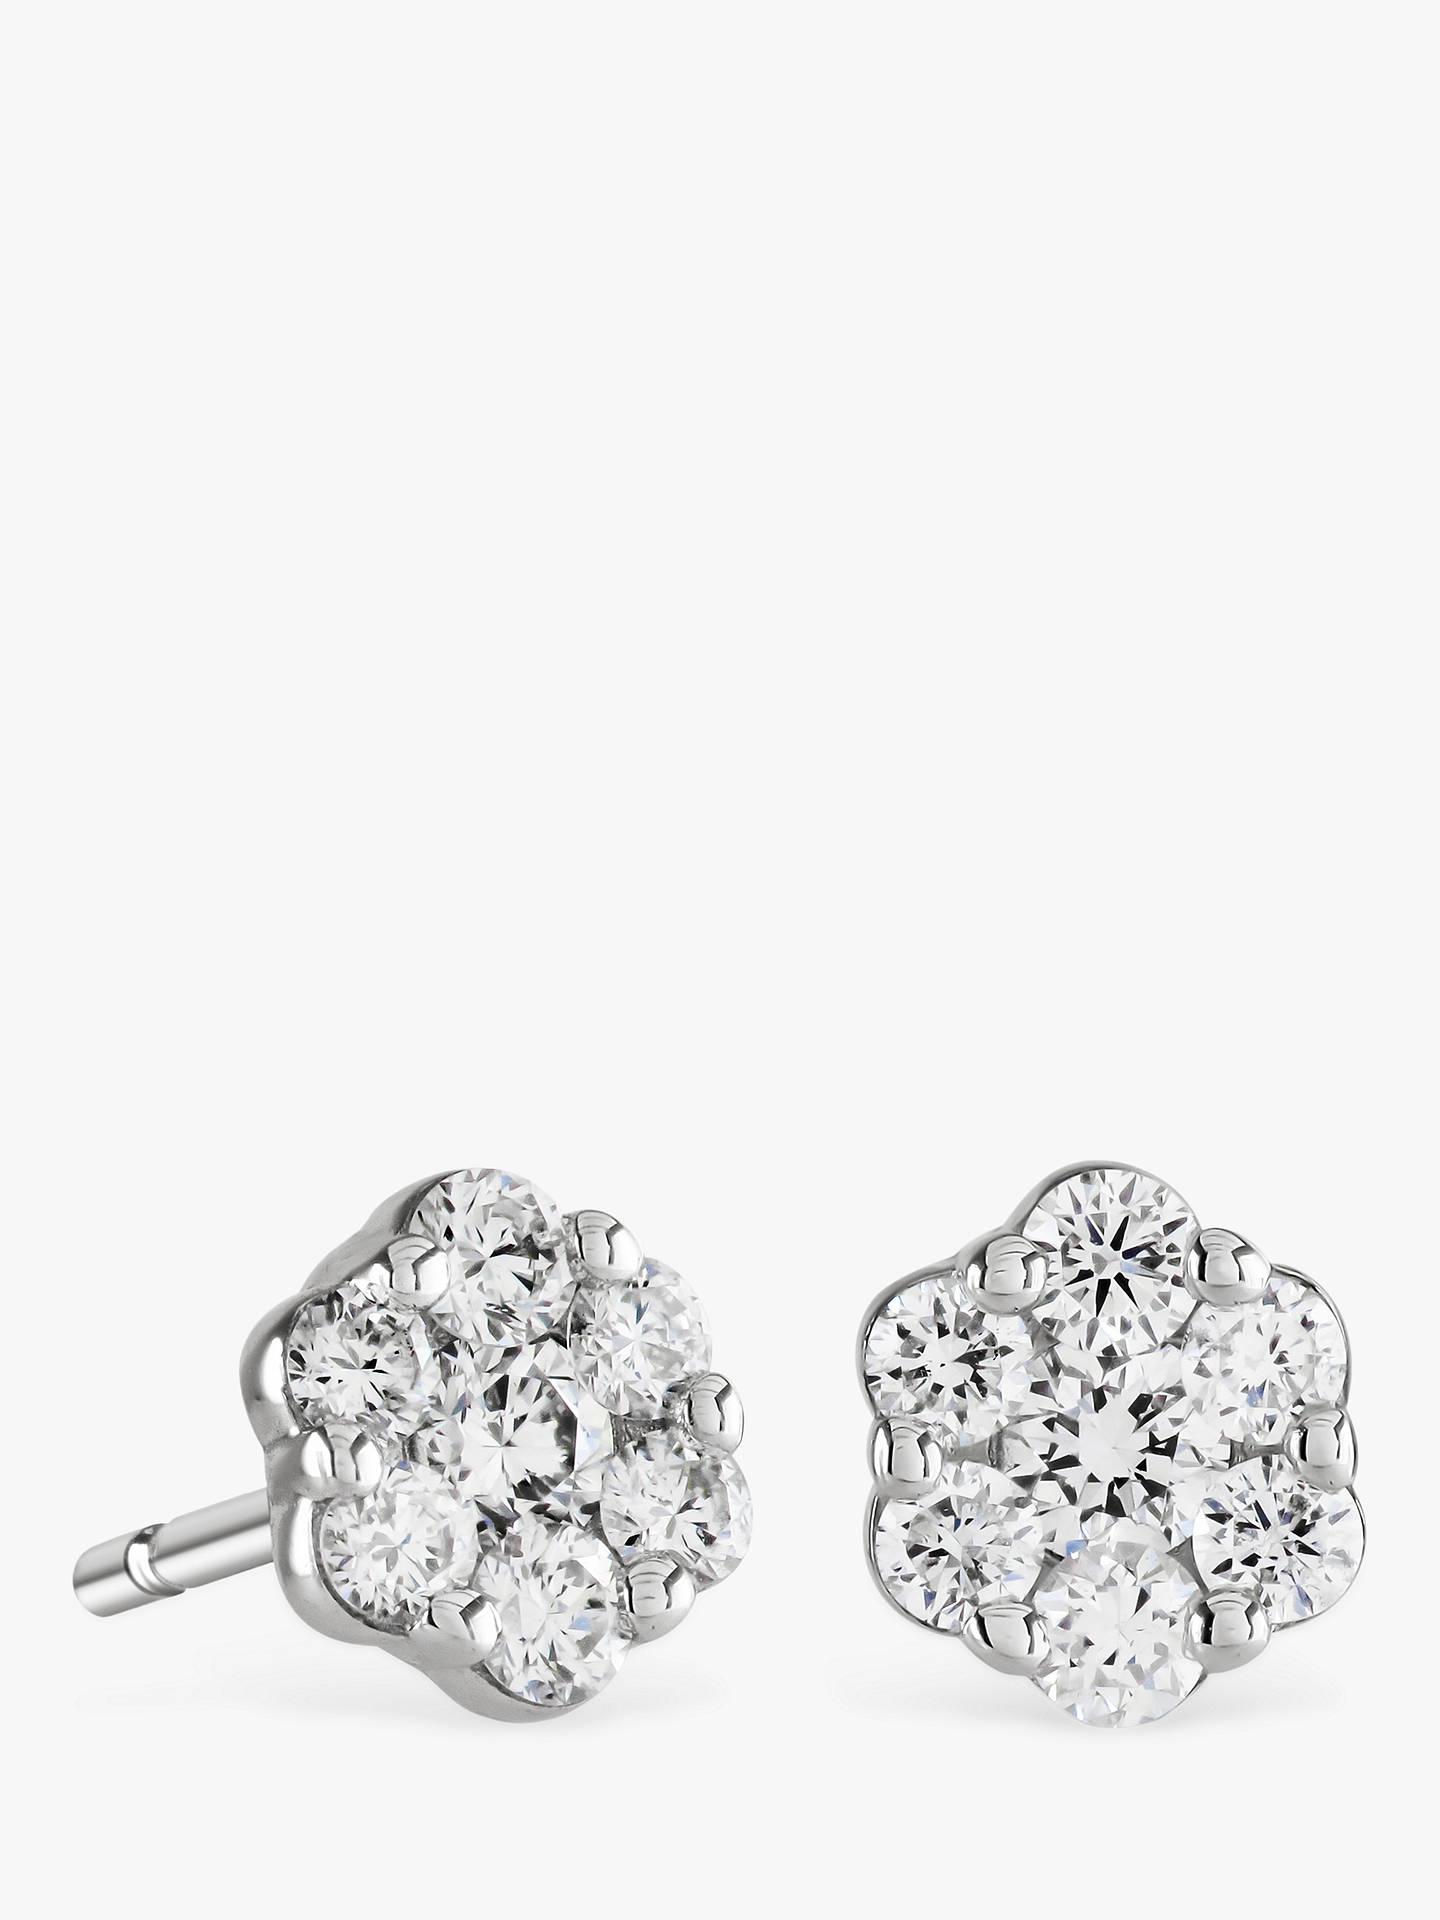 BuyBrown & Newirth 9ct White Gold Diamond Flower Stud Earrings, 0.30ct Online at johnlewis.com